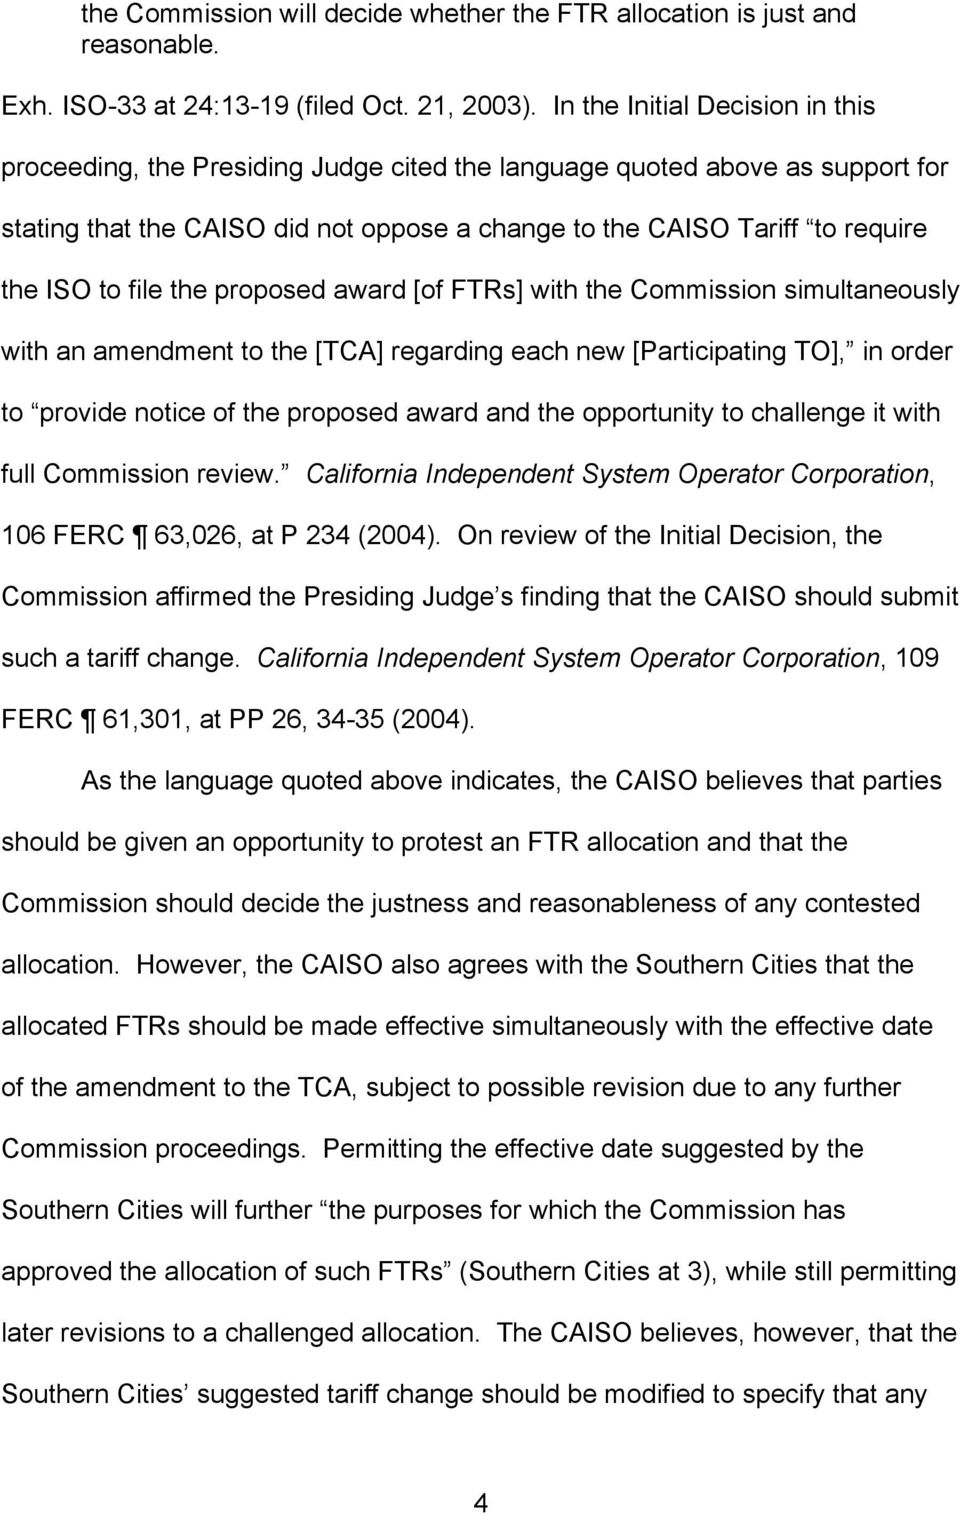 file the proposed award [of FTRs] with the Commission simultaneously with an amendment to the [TCA] regarding each new [Participating TO], in order to provide notice of the proposed award and the